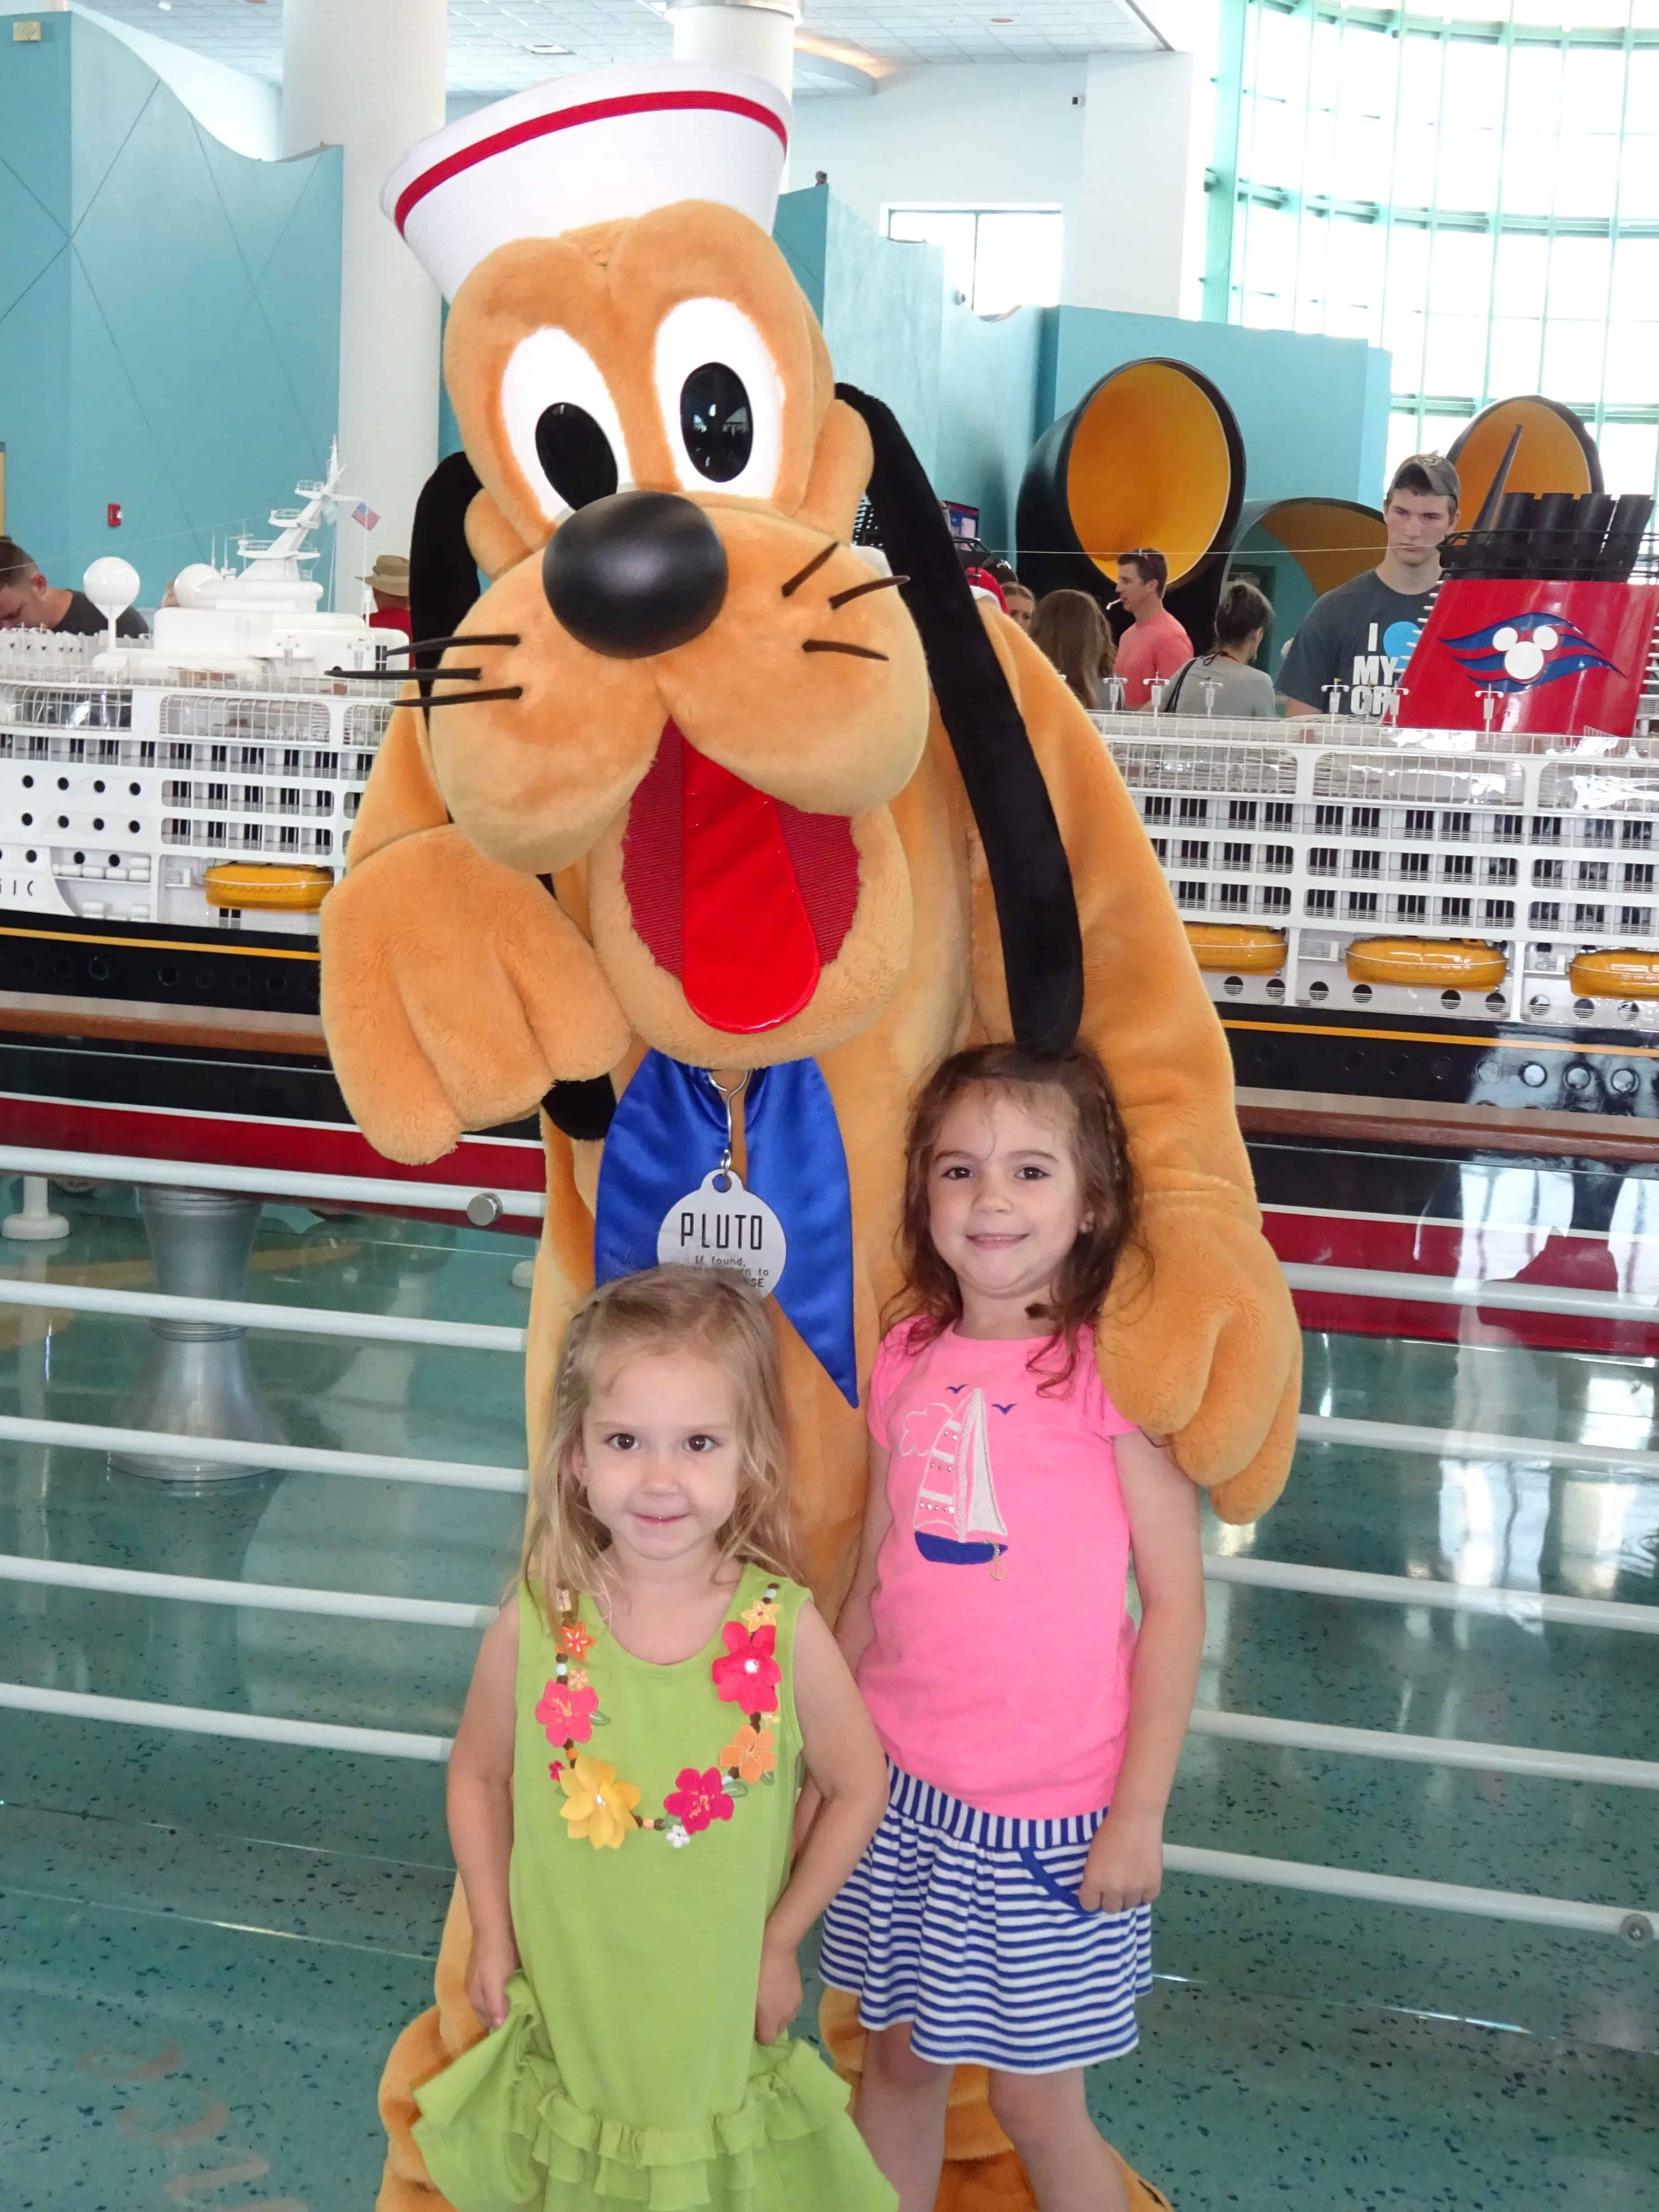 Disney cruise line character meet and greets once you are on the ship the best way to know when and where to meet all the characters is by using the disney cruise line navigator app this will list m4hsunfo